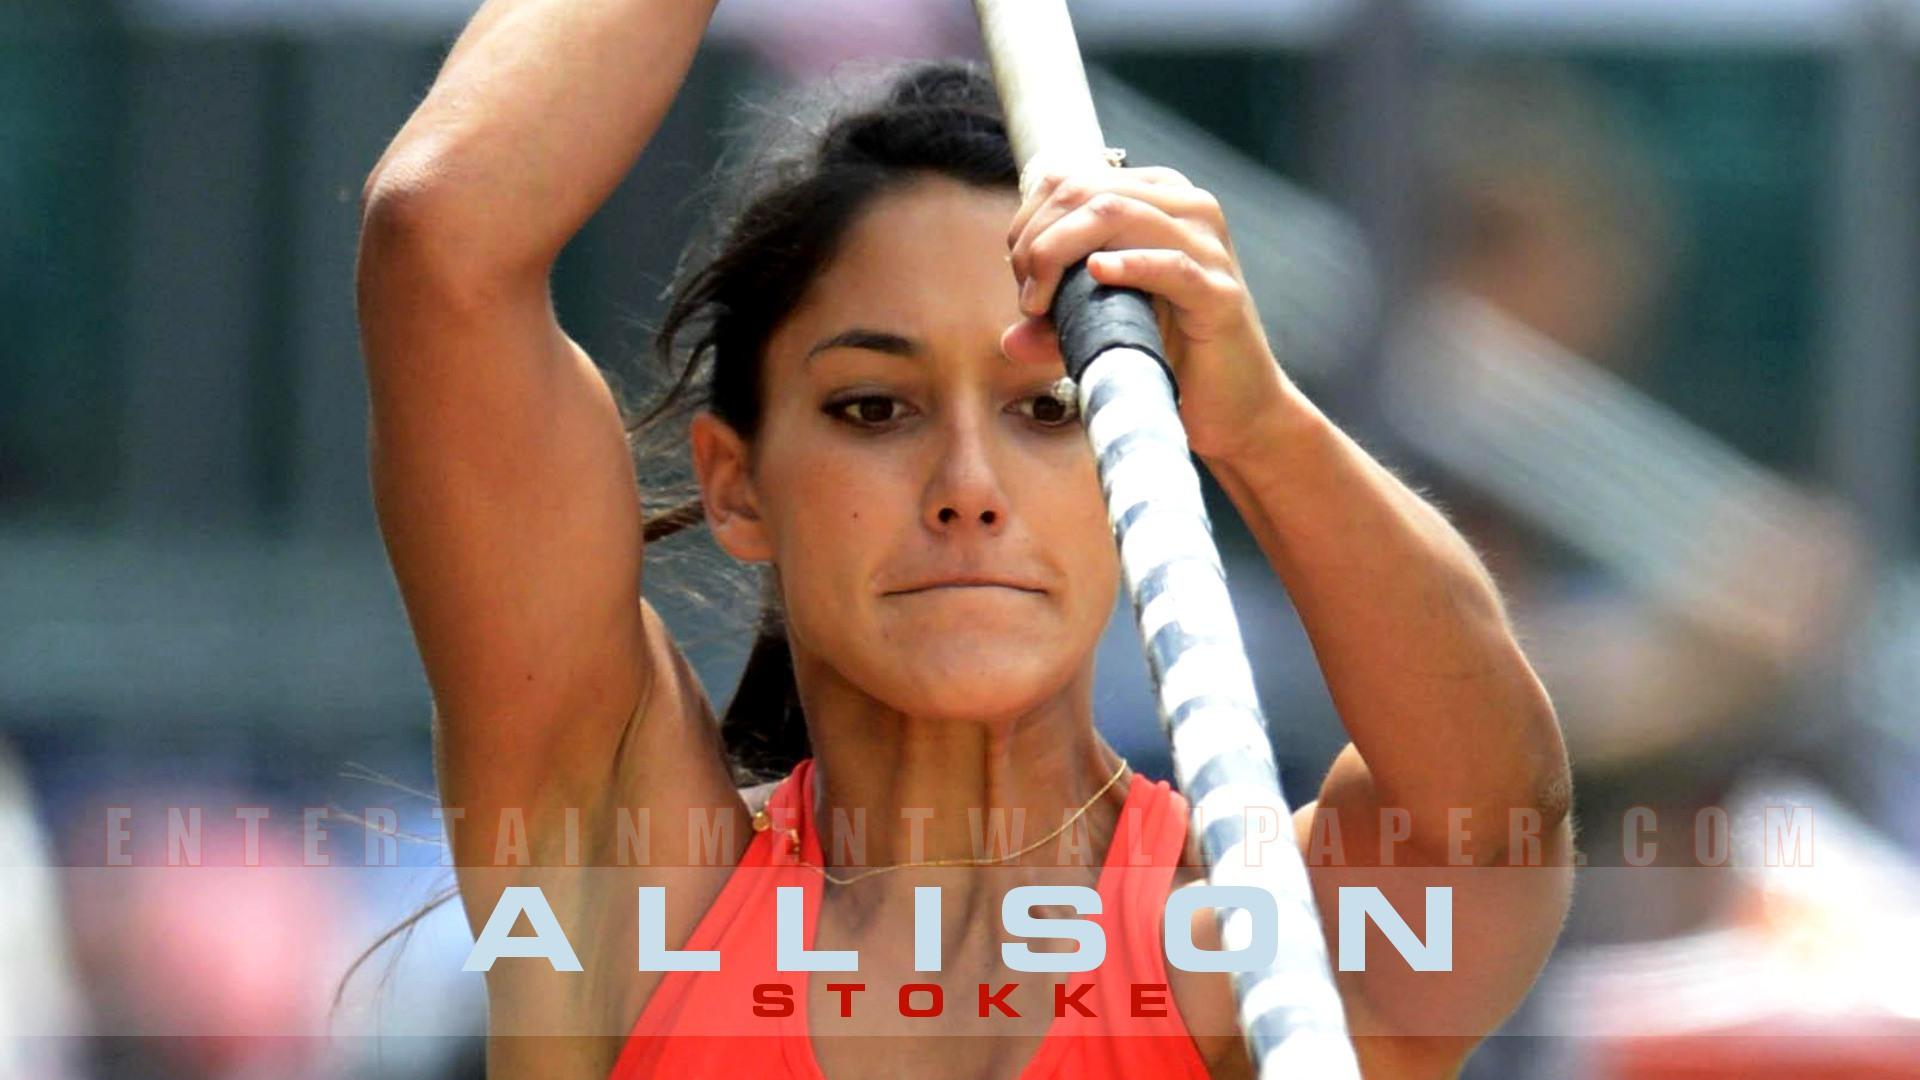 allison stokke wallpaper xpx - photo #24